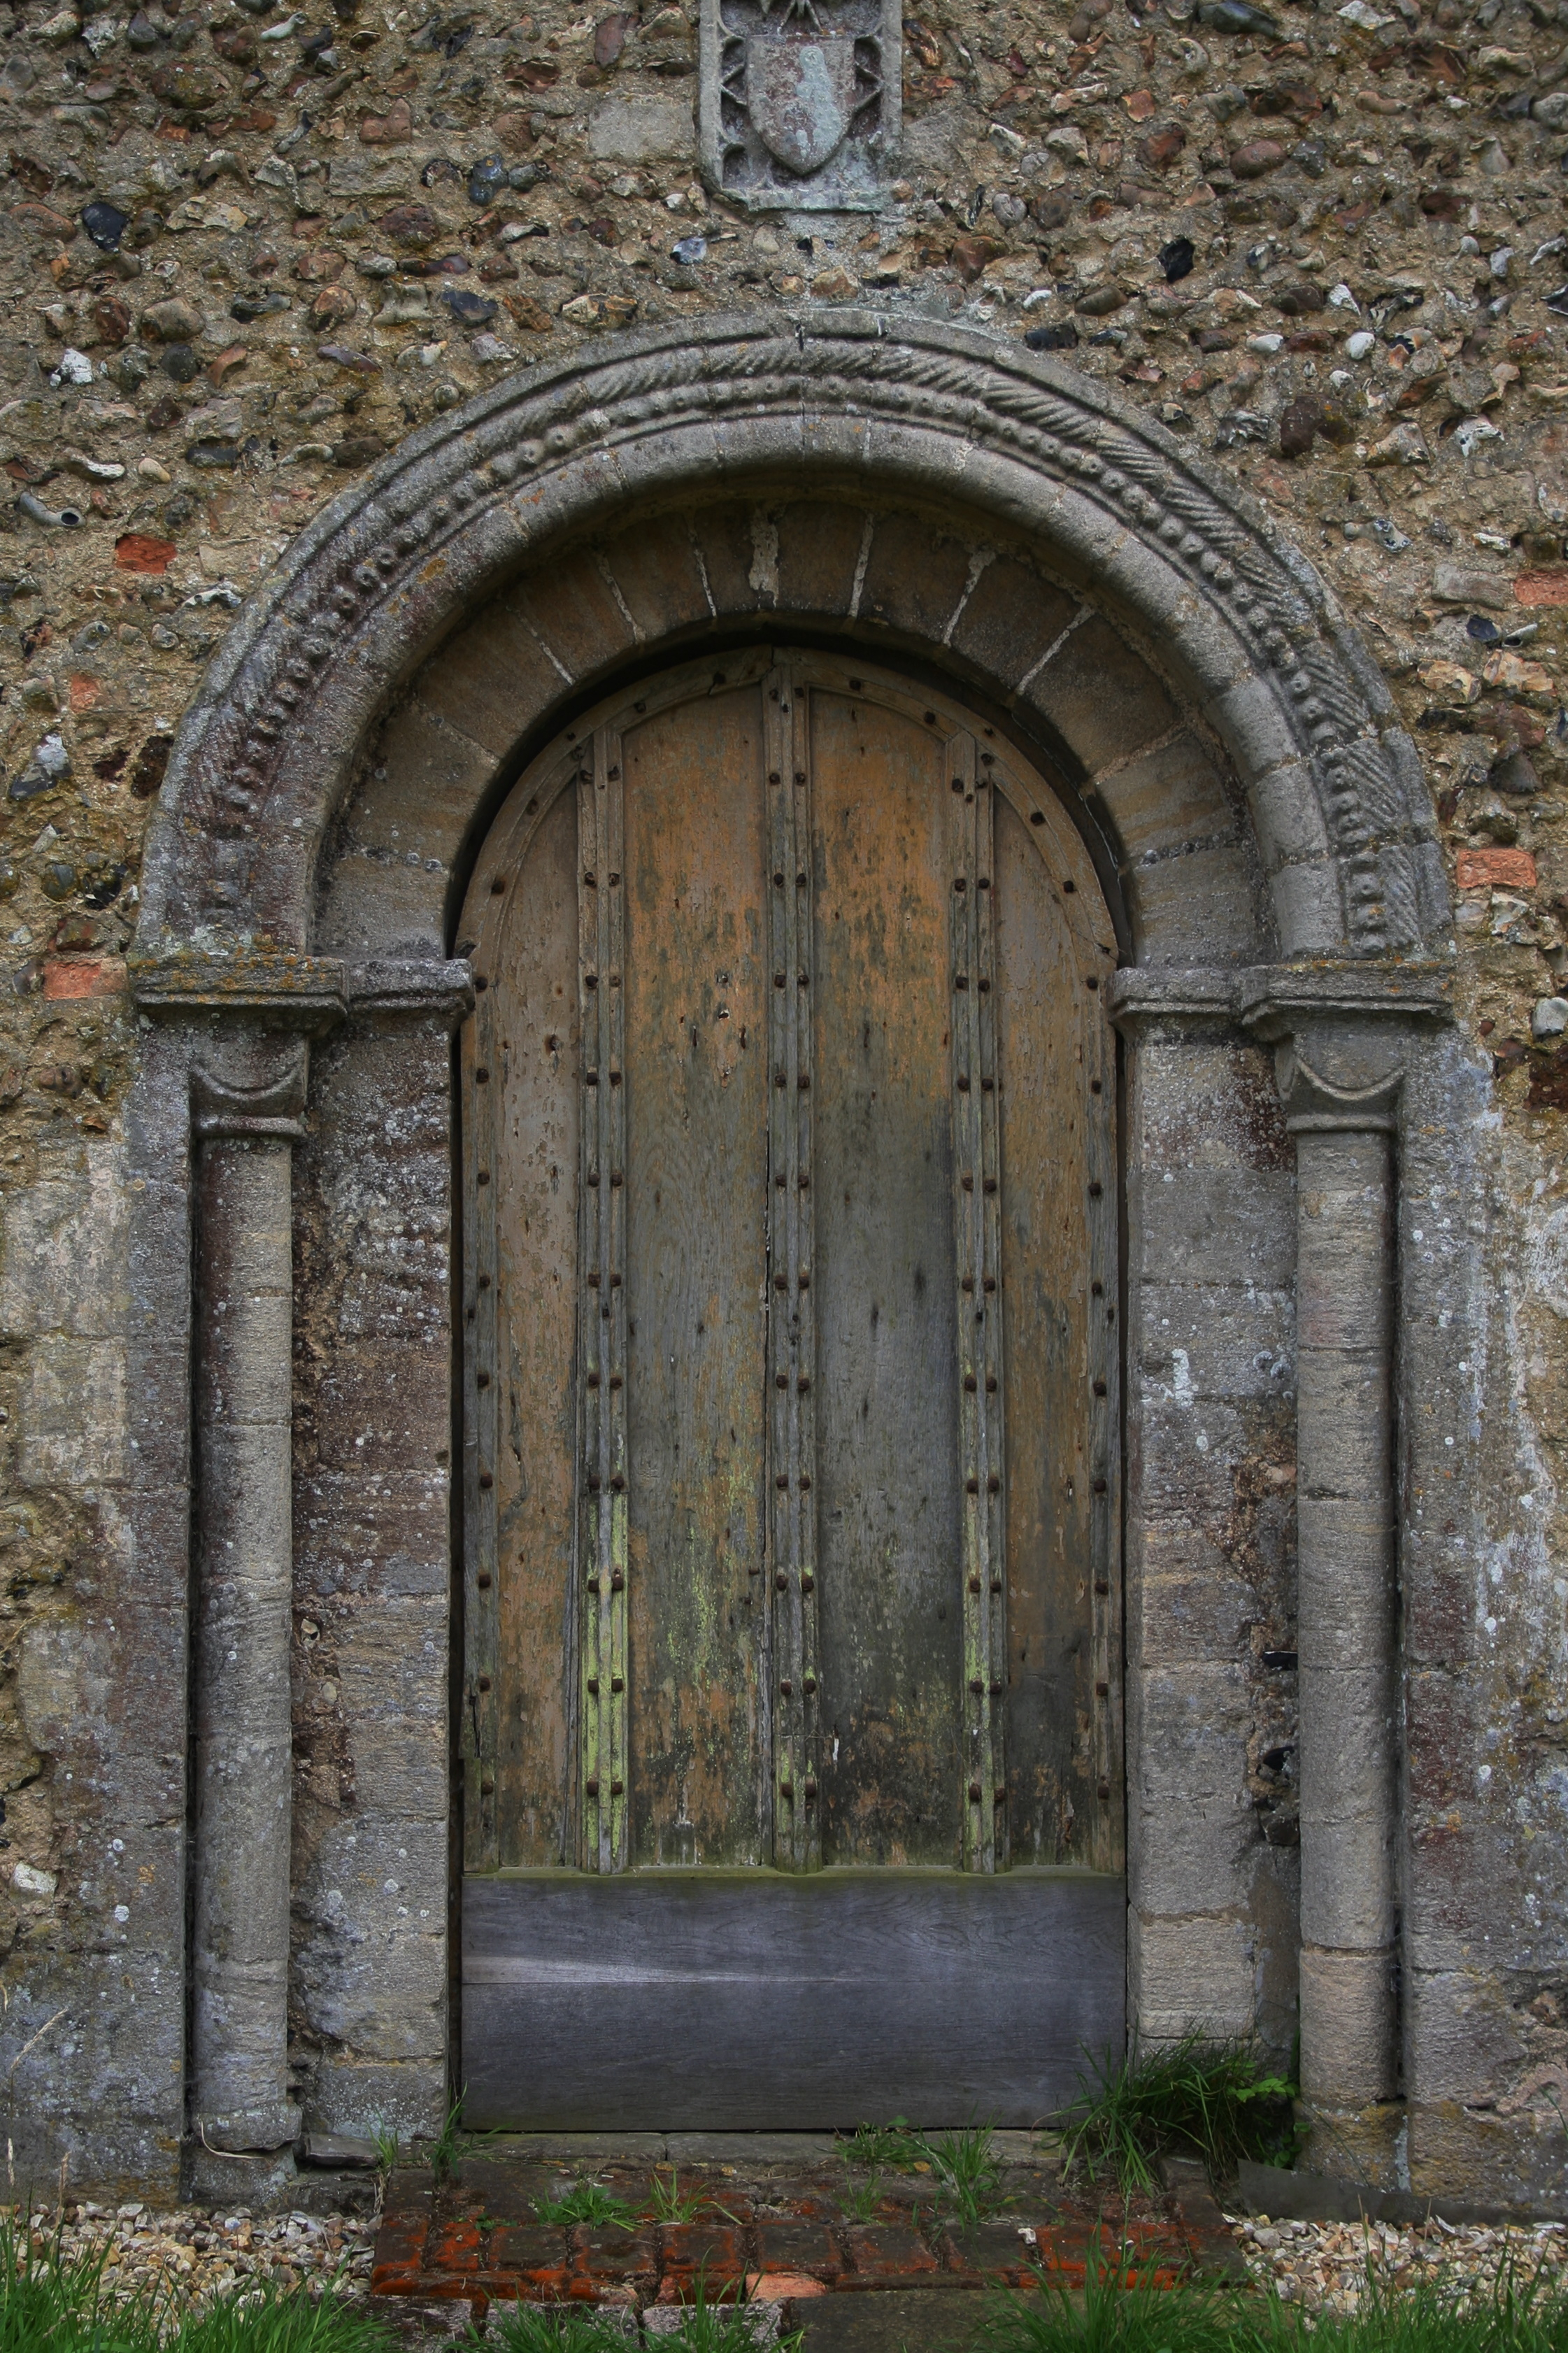 024_norfolk door.jpg